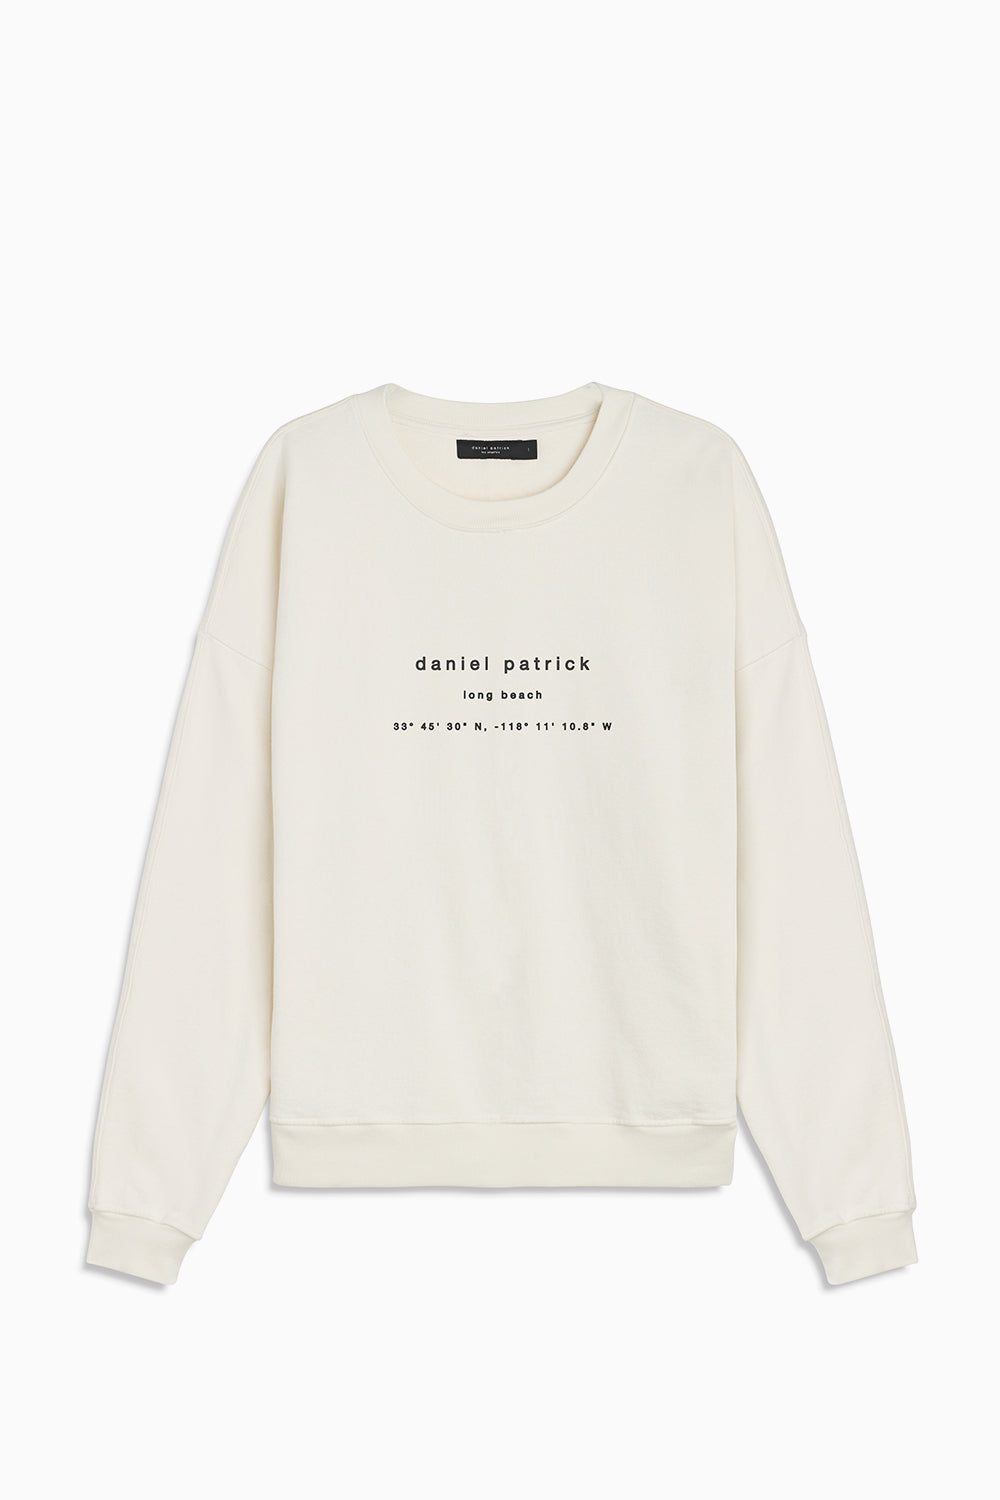 long beach souvenir sweat / natural